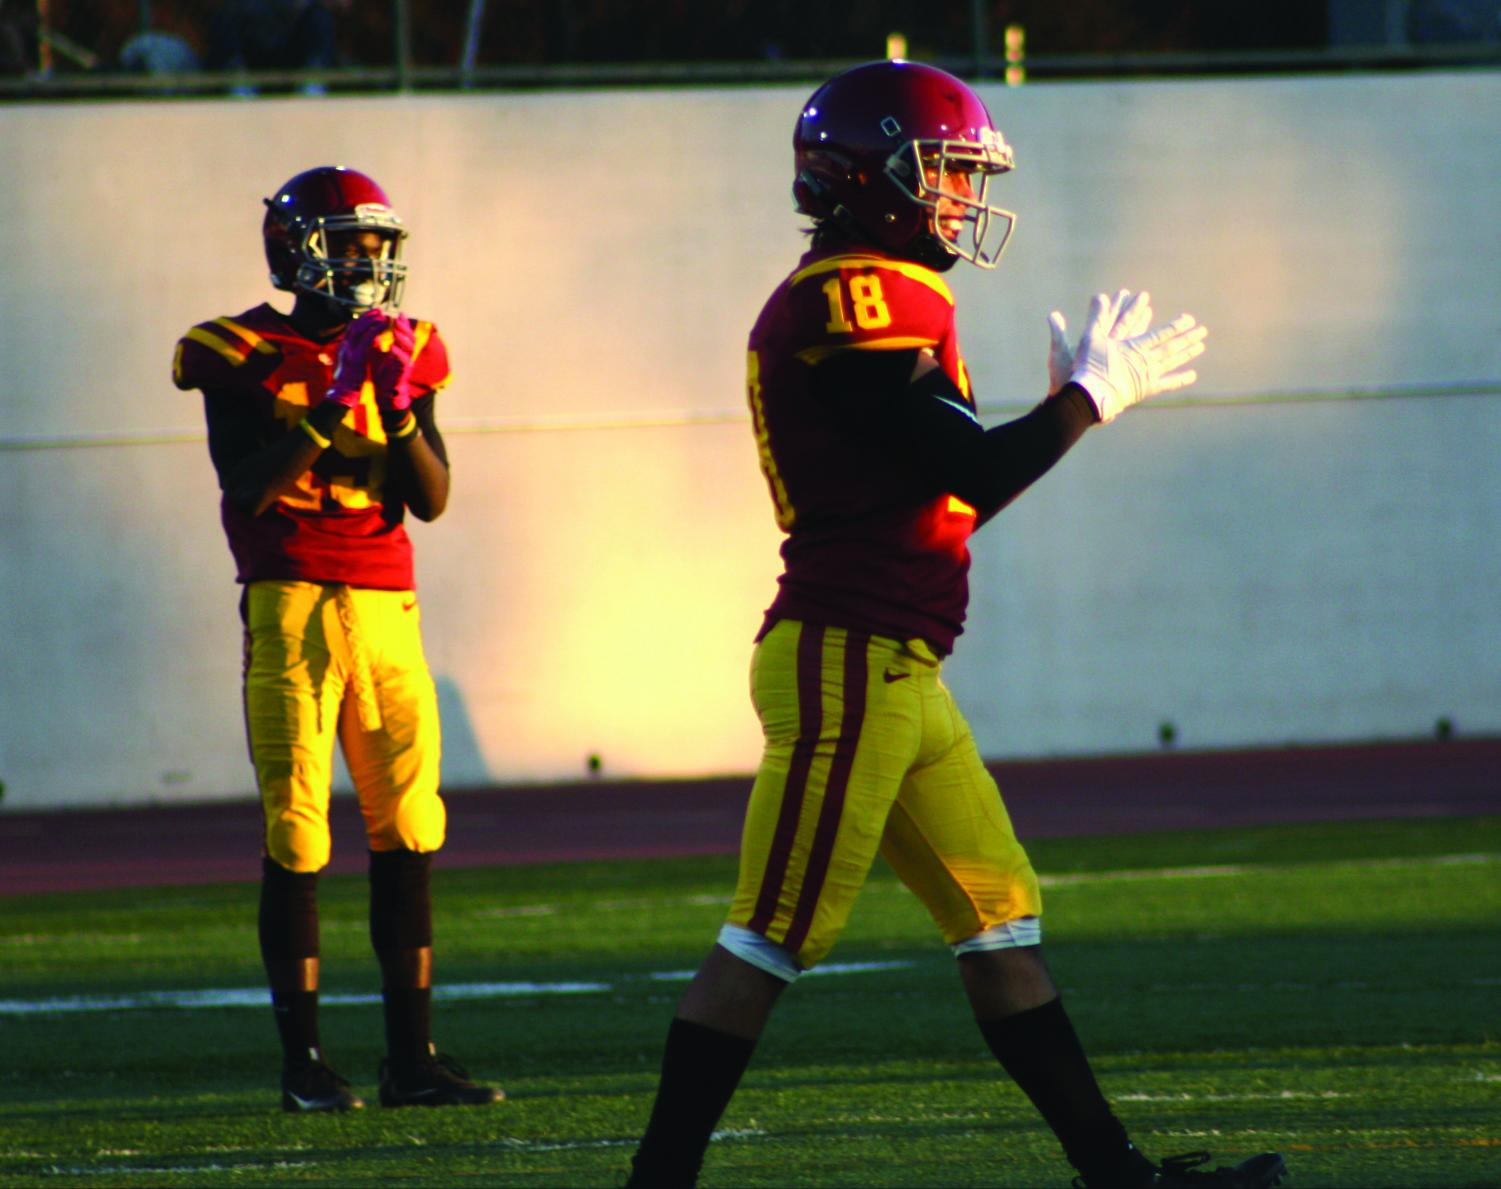 Glendale college football team continues to make progress going into October.